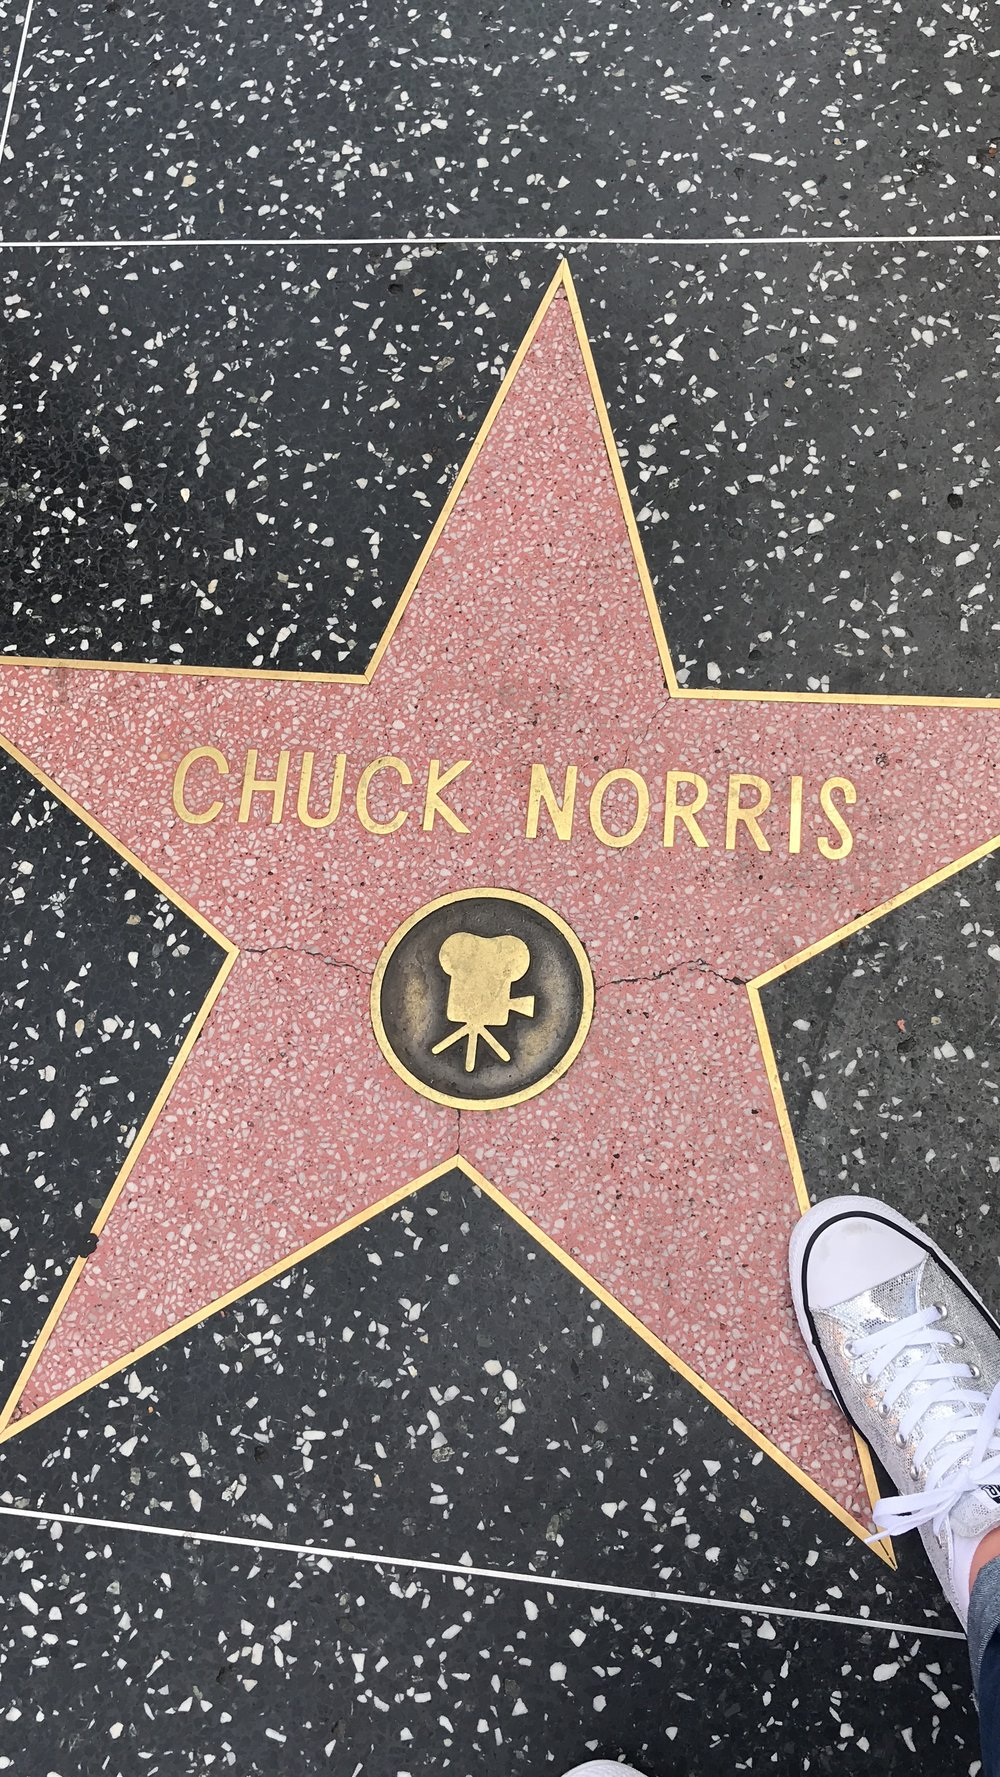 Chuck Norris on Hollywood Walk of Fame - Hollywood Blvd